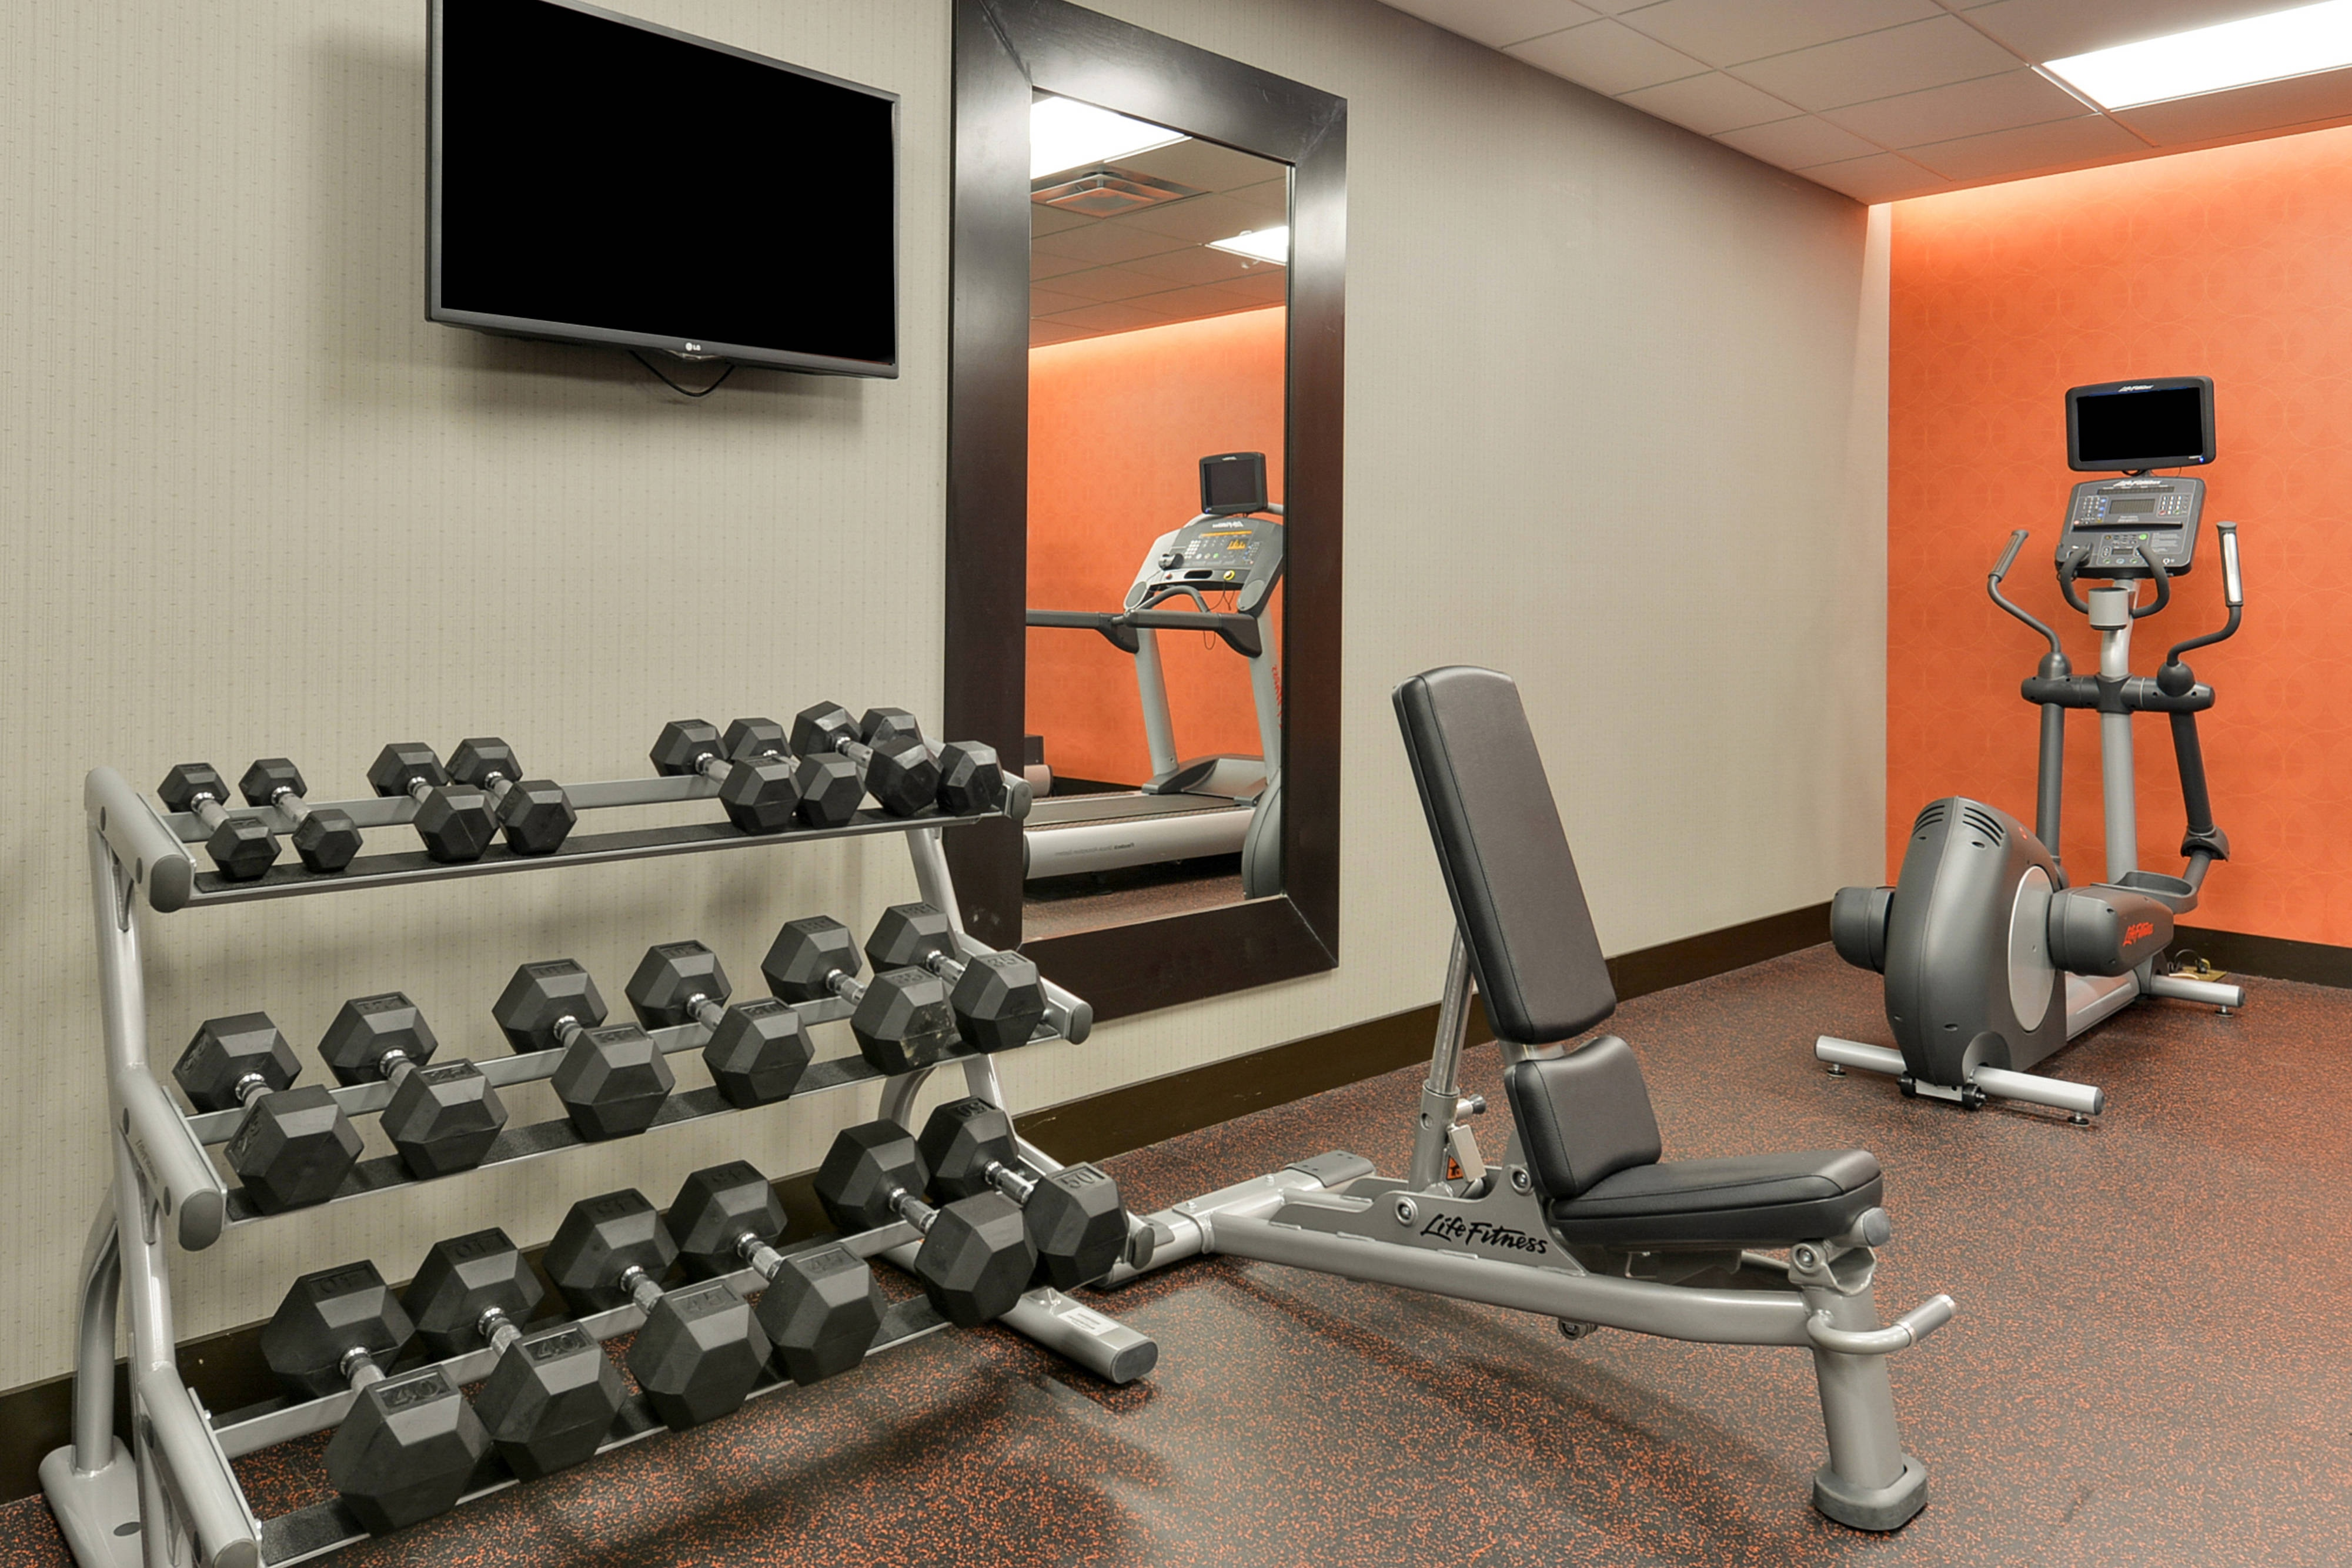 Fitness Center Weights & Elliptical